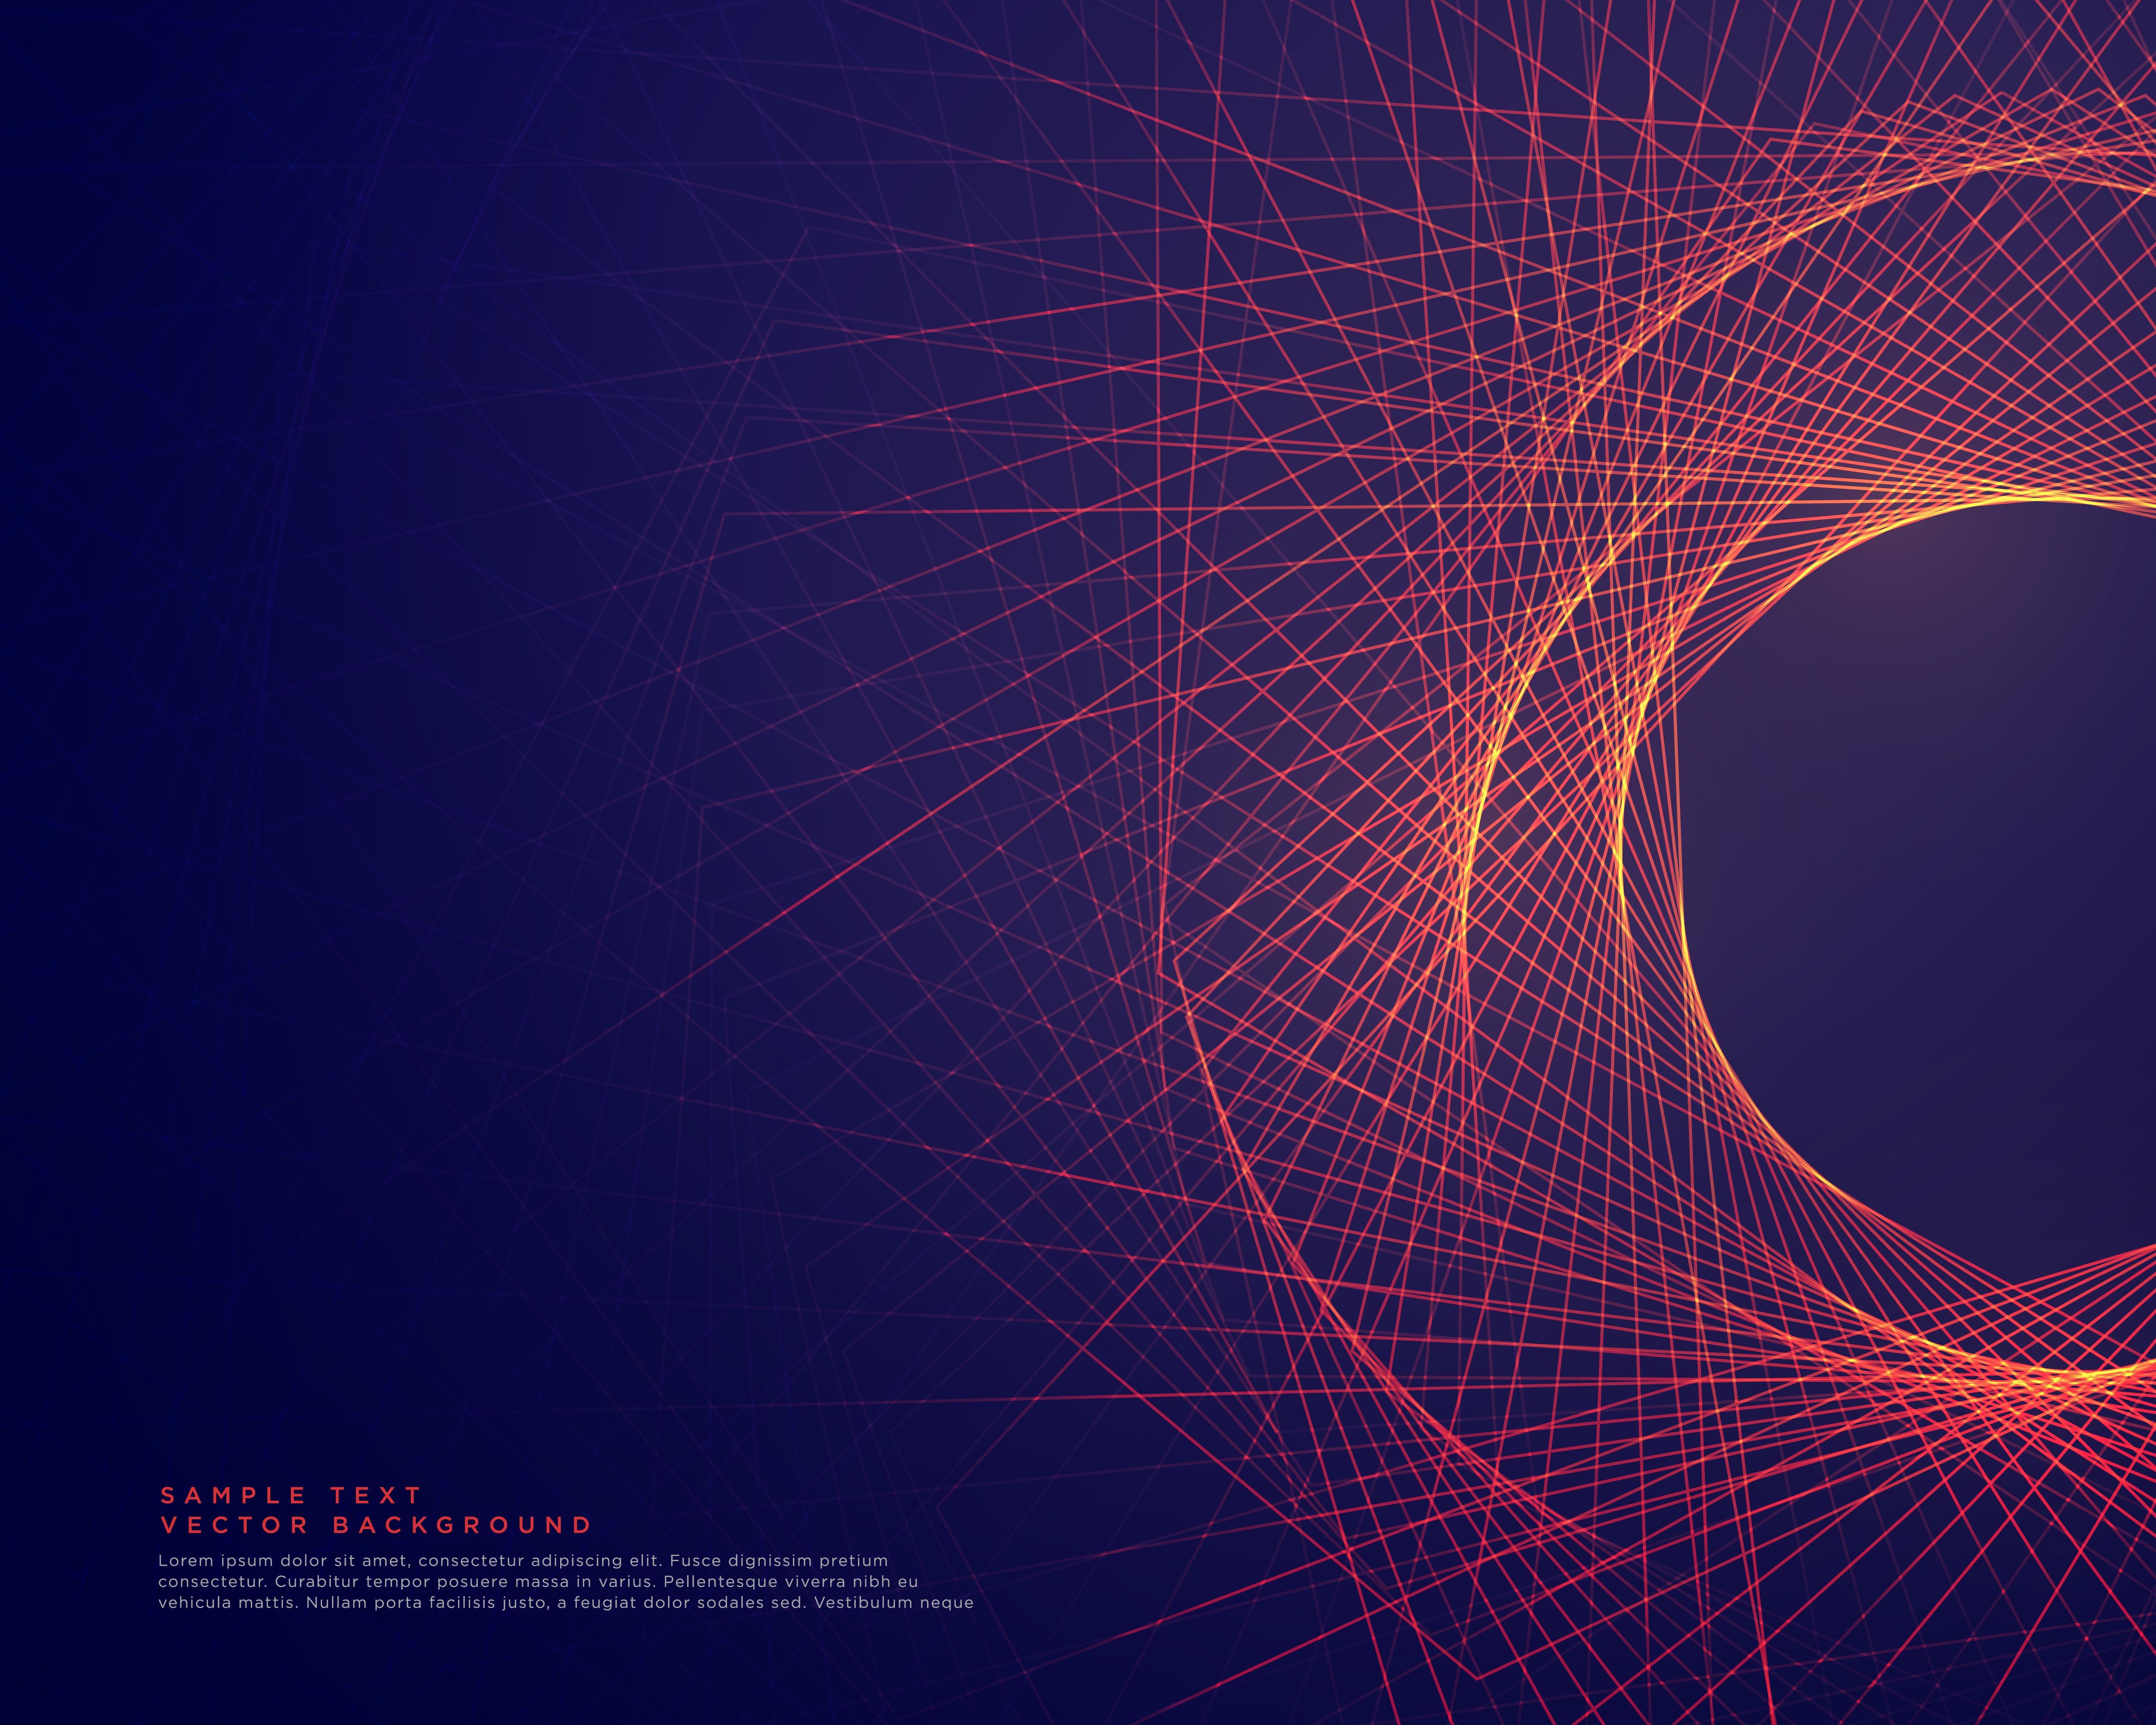 Vector Drawing Lines App : Abstract lines forming tunner shape background download